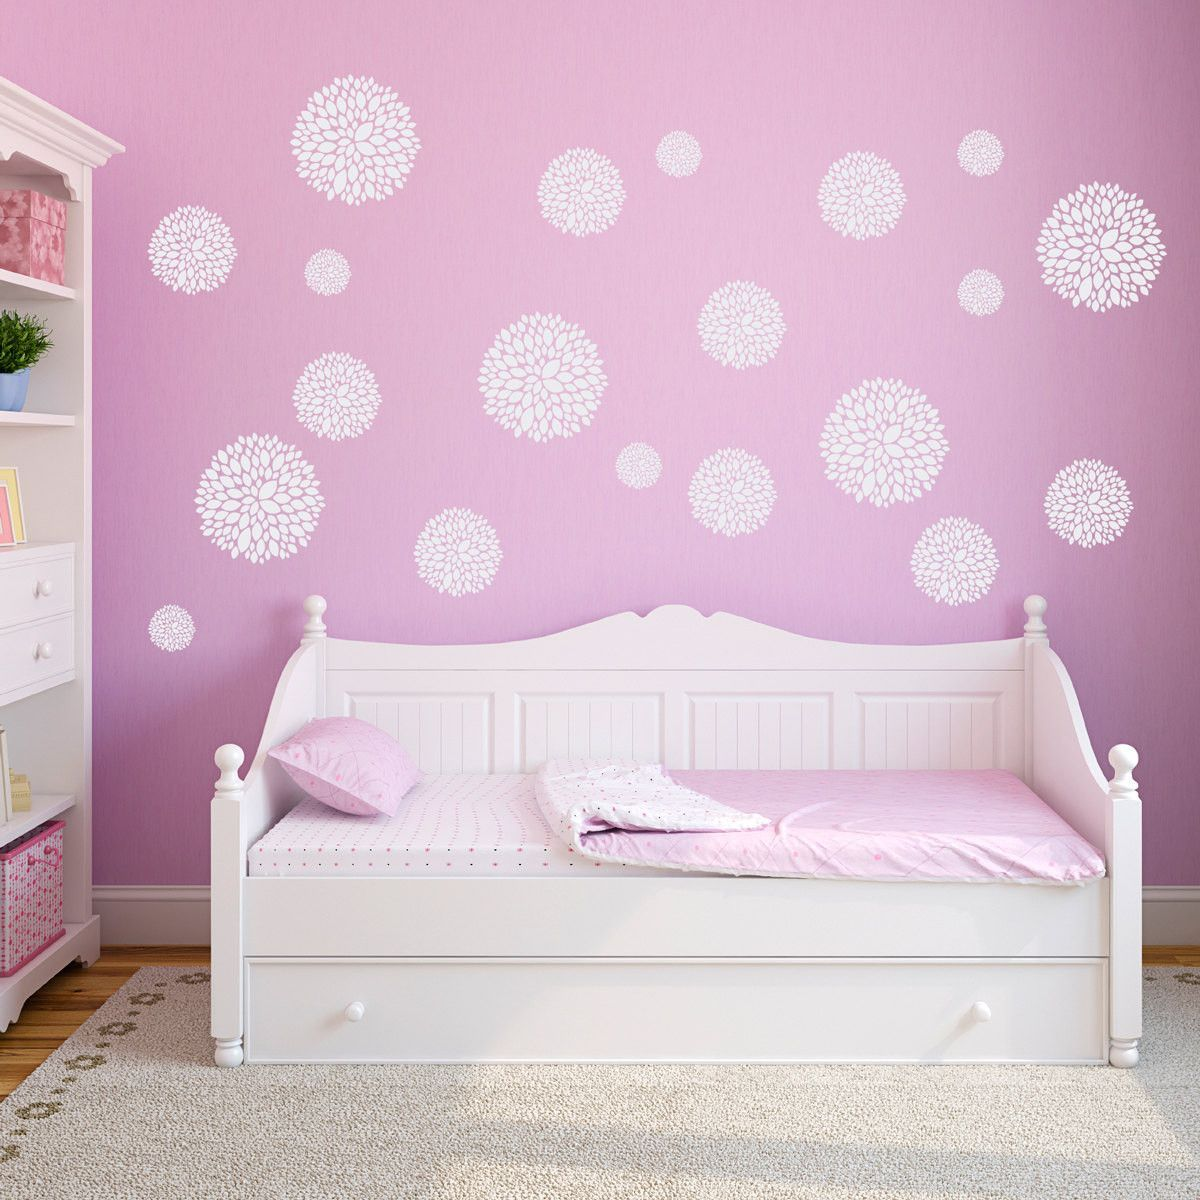 peony flower wall decals set of 20 flowers girls on wall stickers for bedroom id=49772